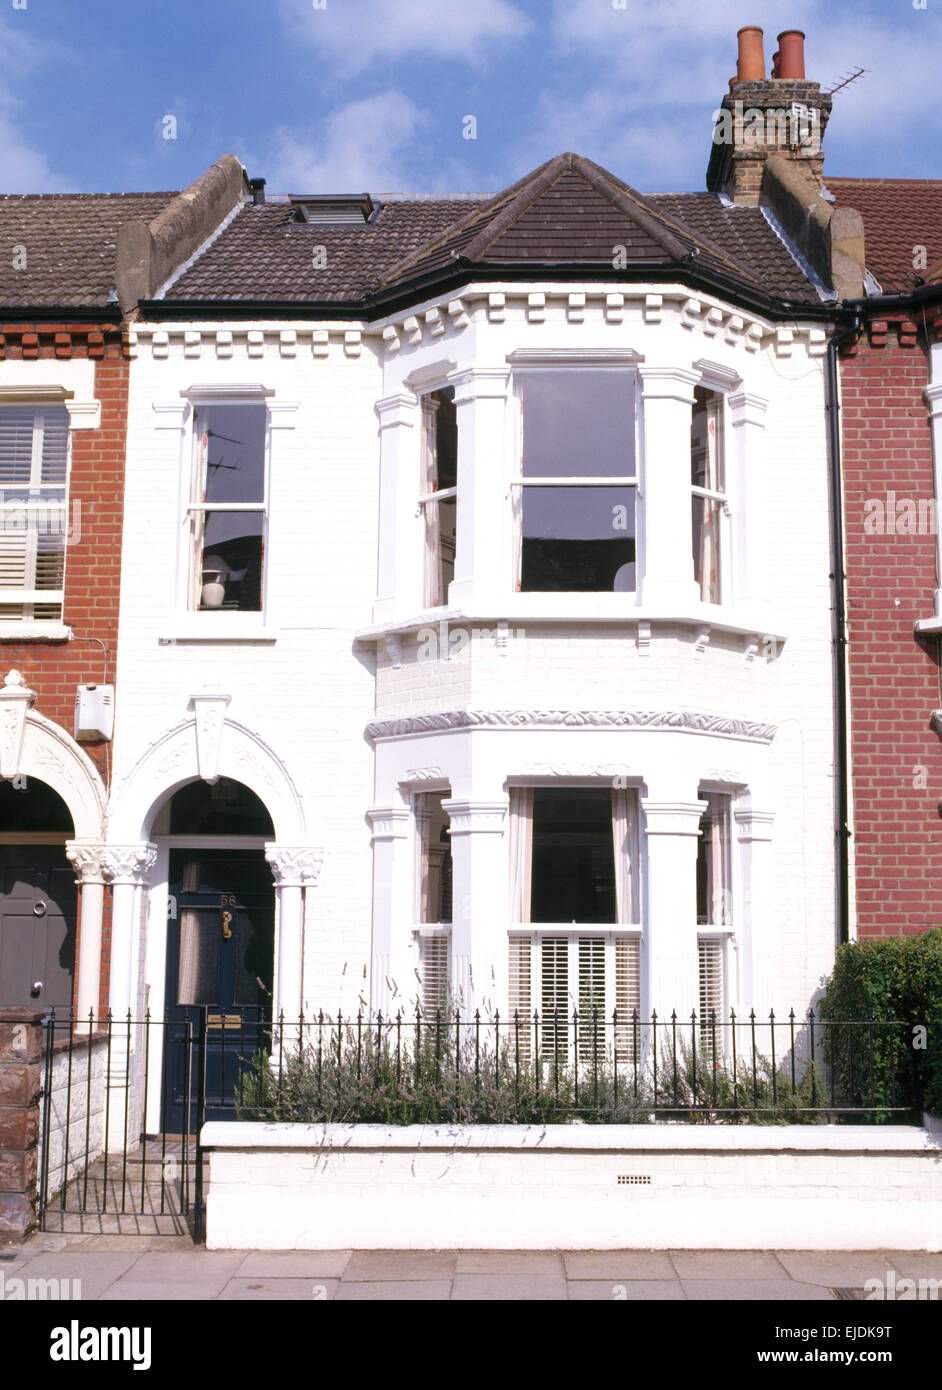 Bay windows exterior - Exterior Of Terraced Victorian House With Bay Windows